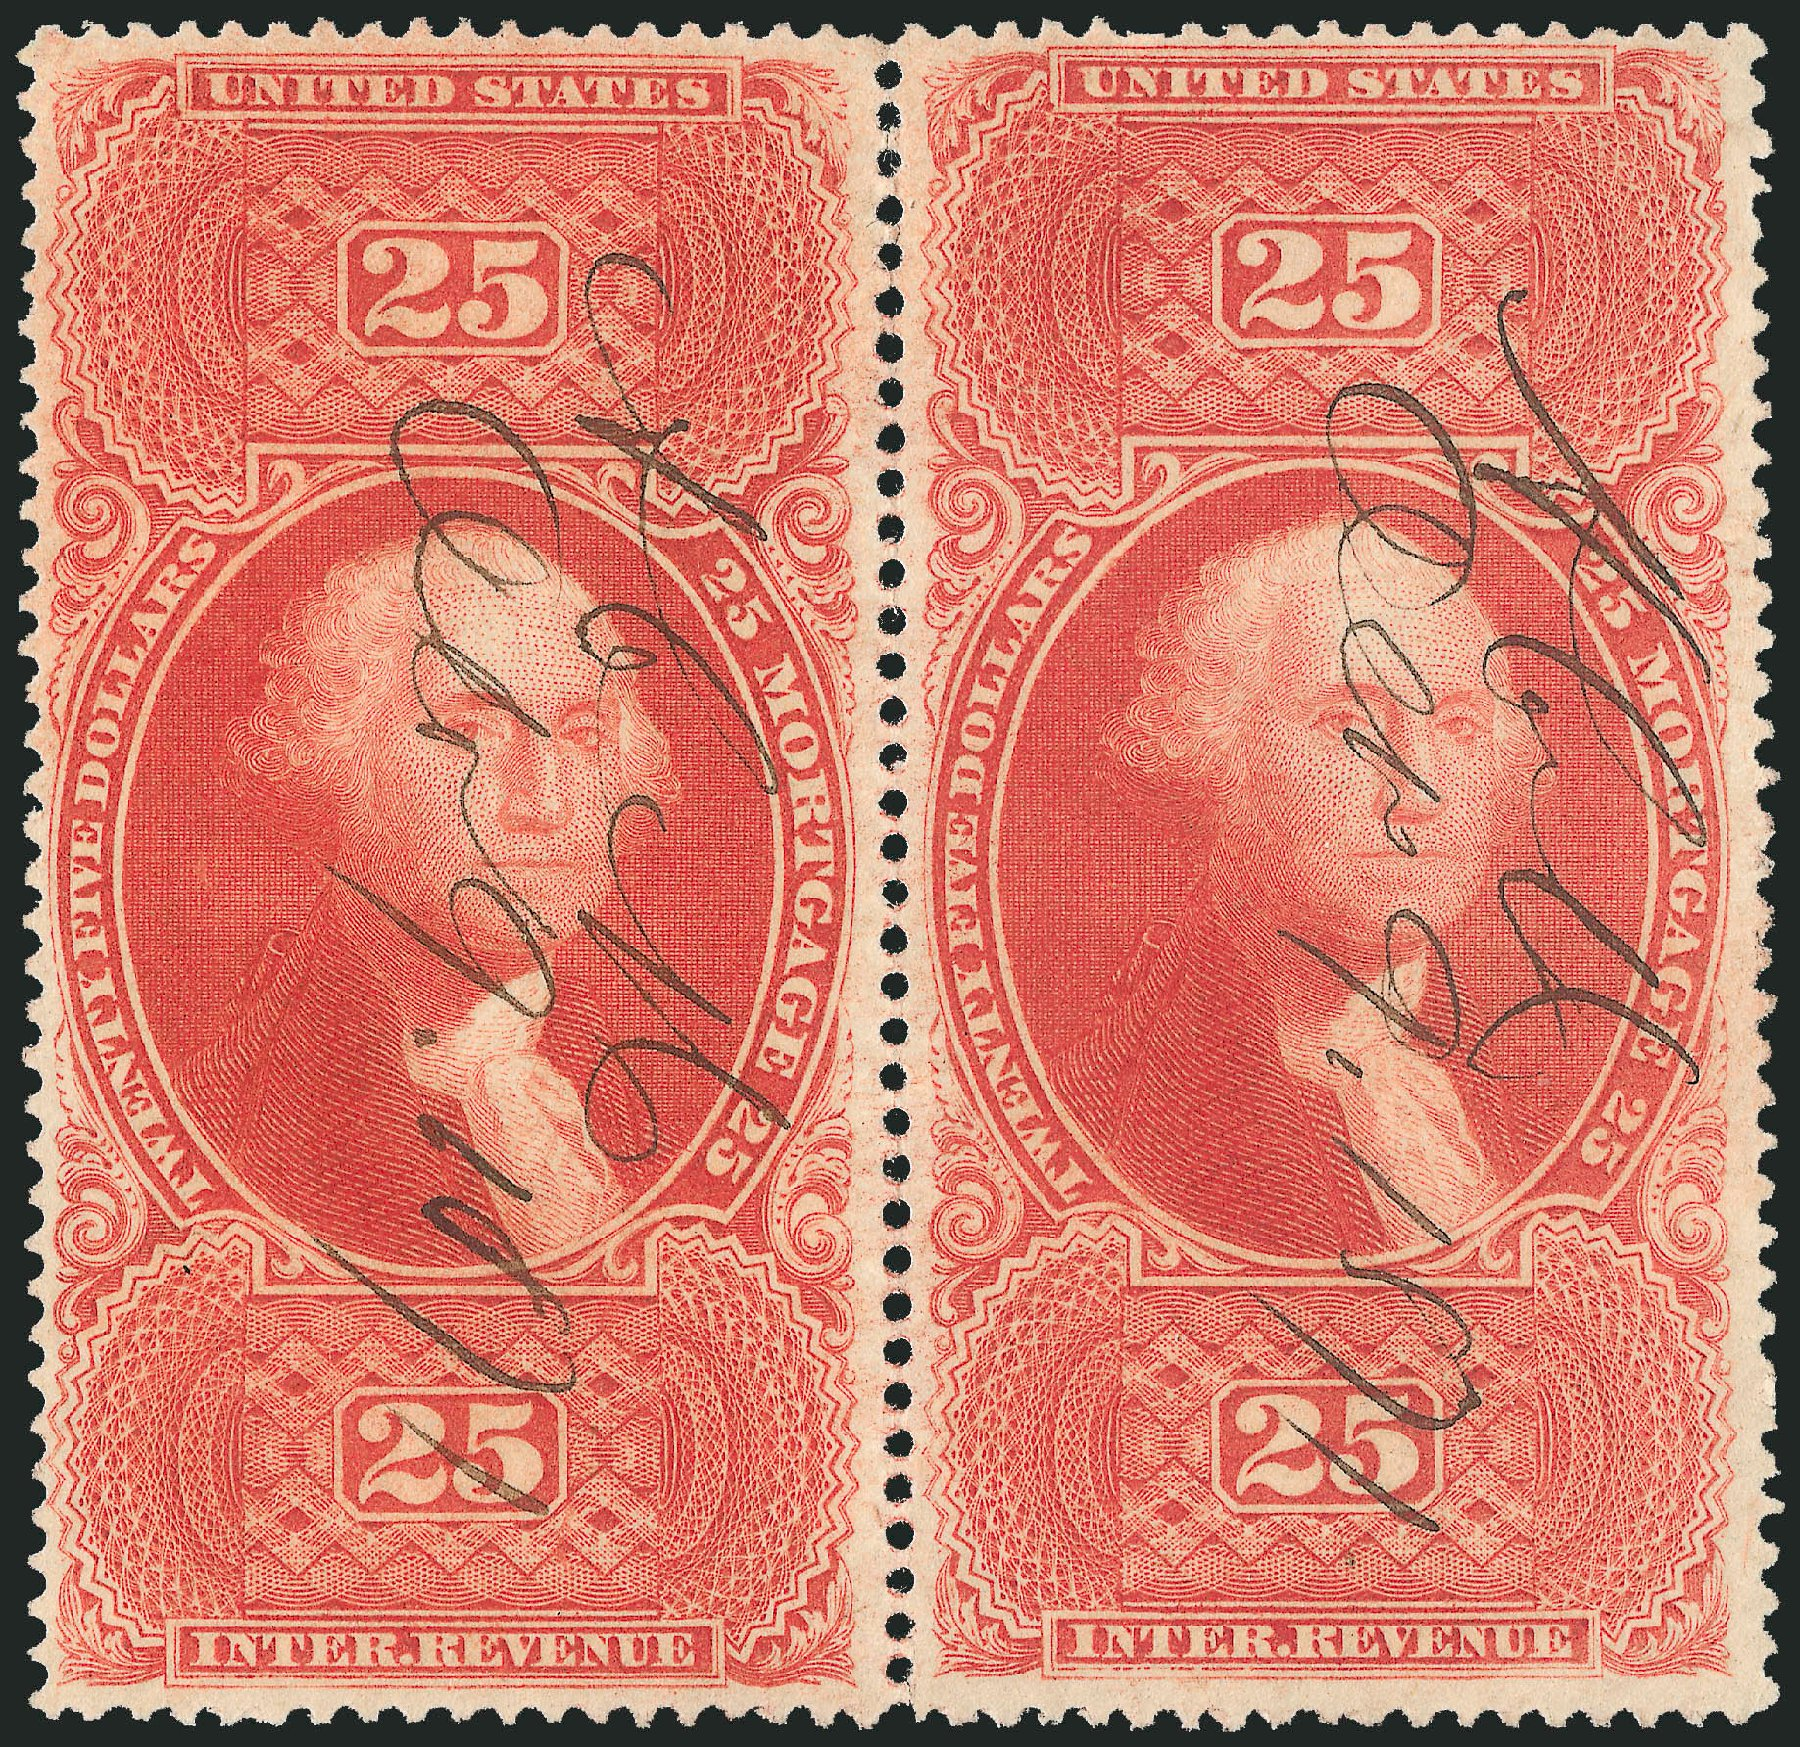 Prices of US Stamp Scott Catalog R100 - 1863 US$25.00 Revenue Mortgage. Robert Siegel Auction Galleries, Dec 2014, Sale 1089, Lot 464